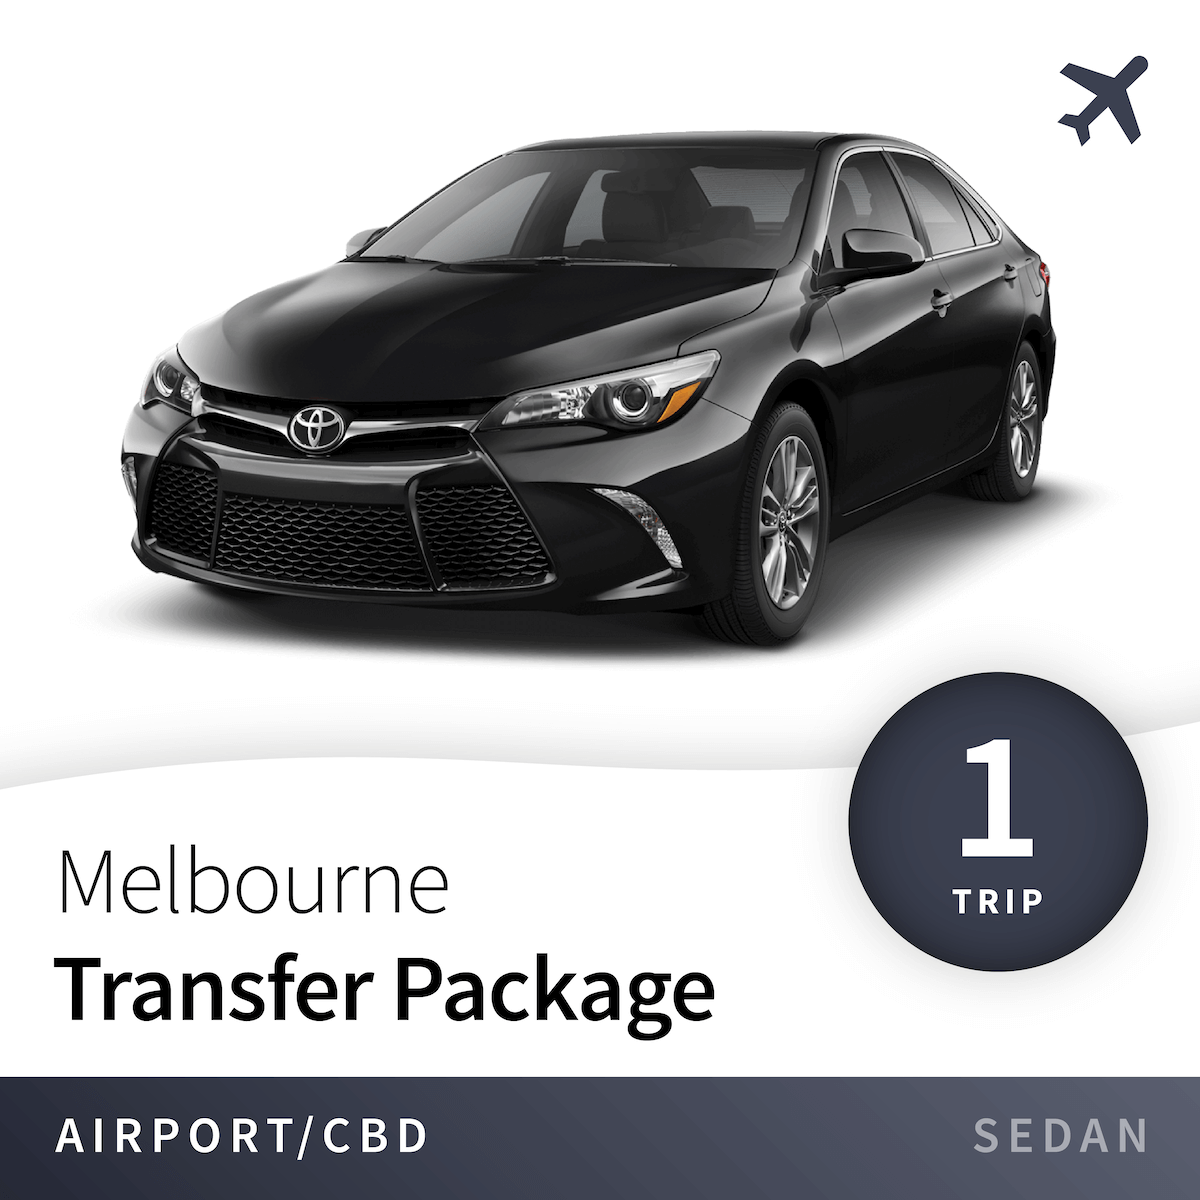 Melbourne Airport Transfer Package - Sedan (1 Trip) 8